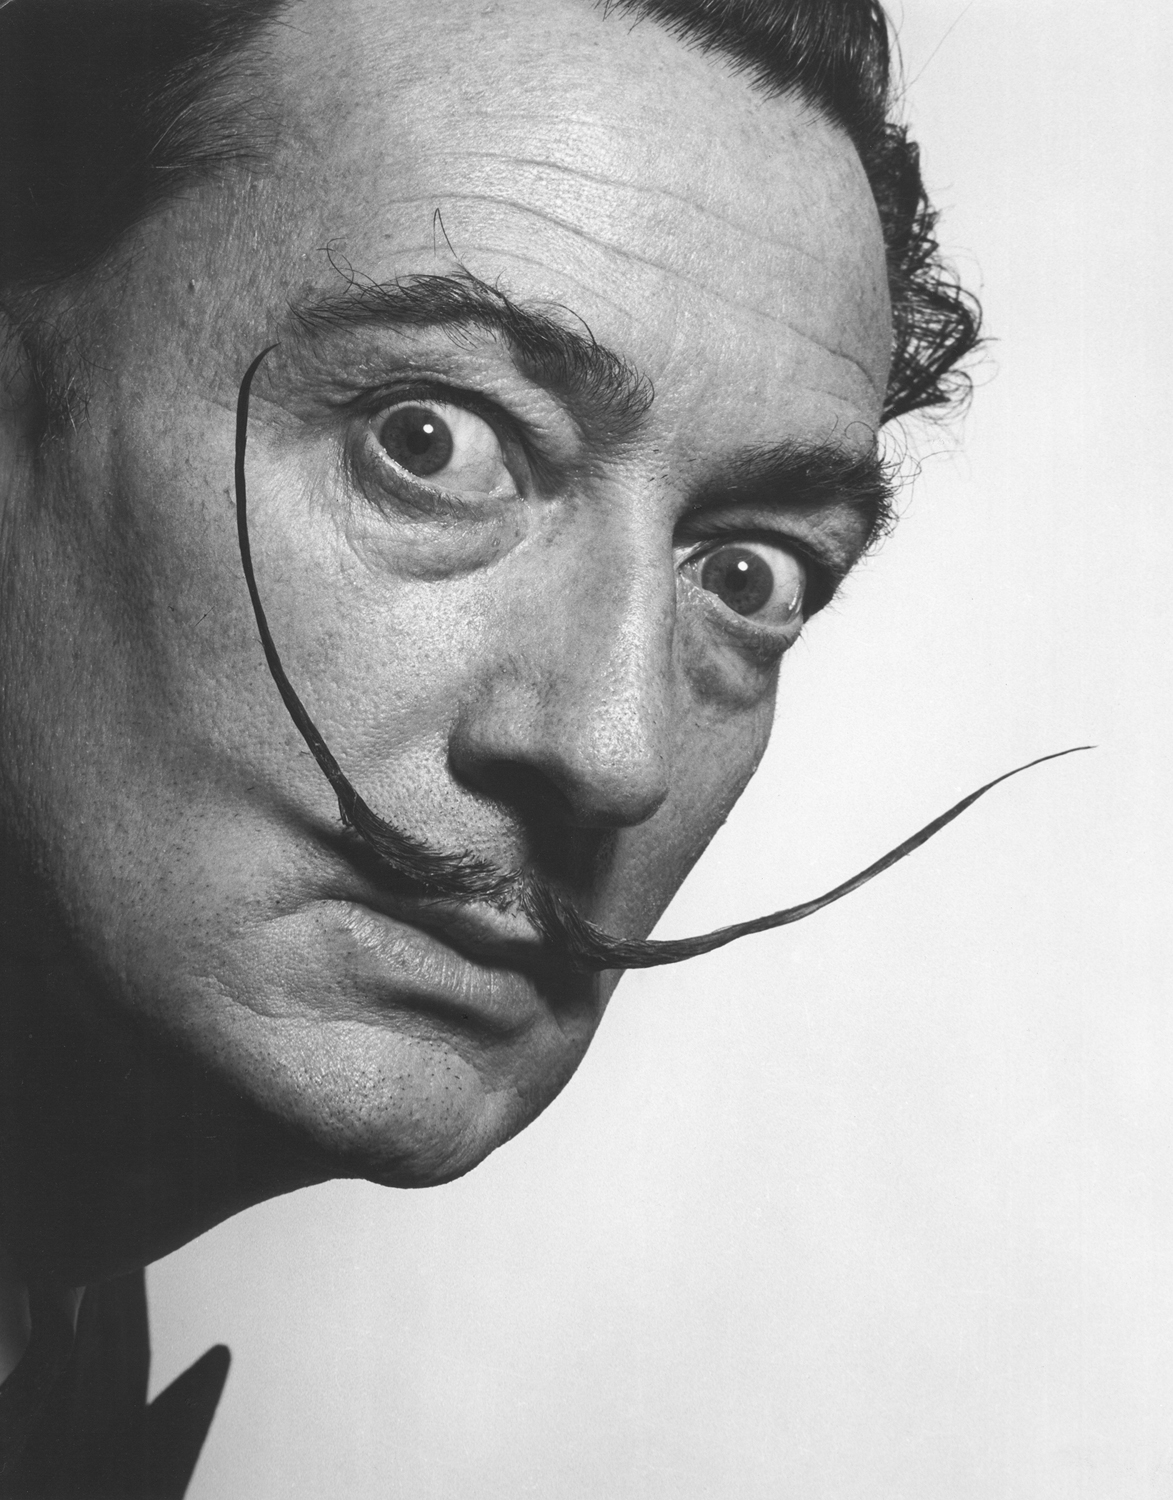 Surrealistic excentricities and inspirations in Salvador Dalí ...